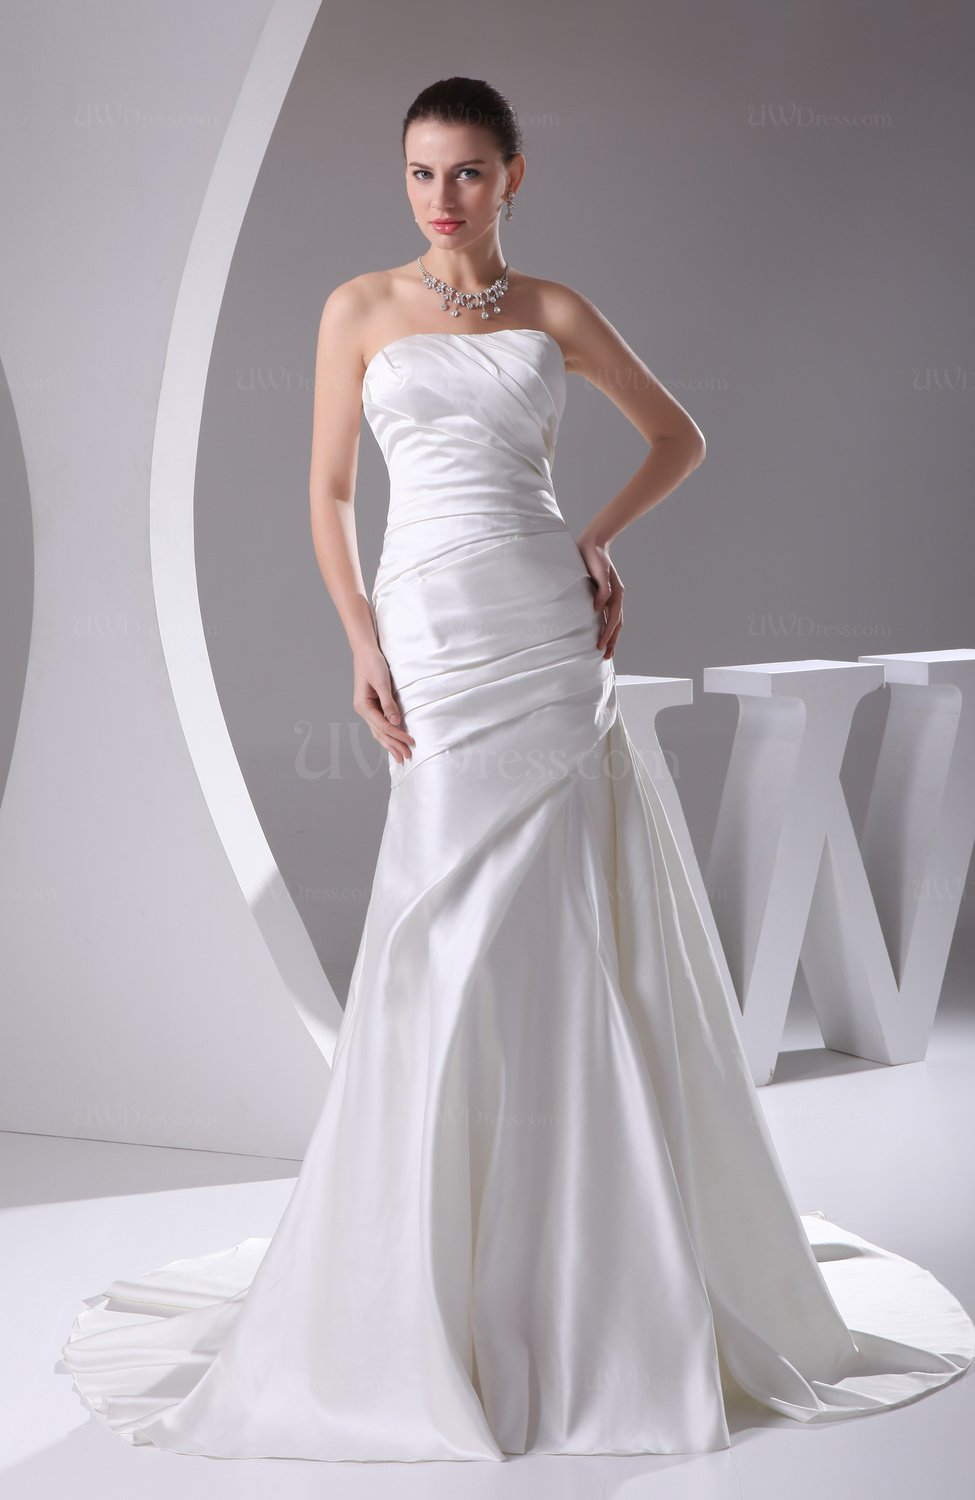 Modern Outdoor Strapless Backless Satin Ruching Bridal